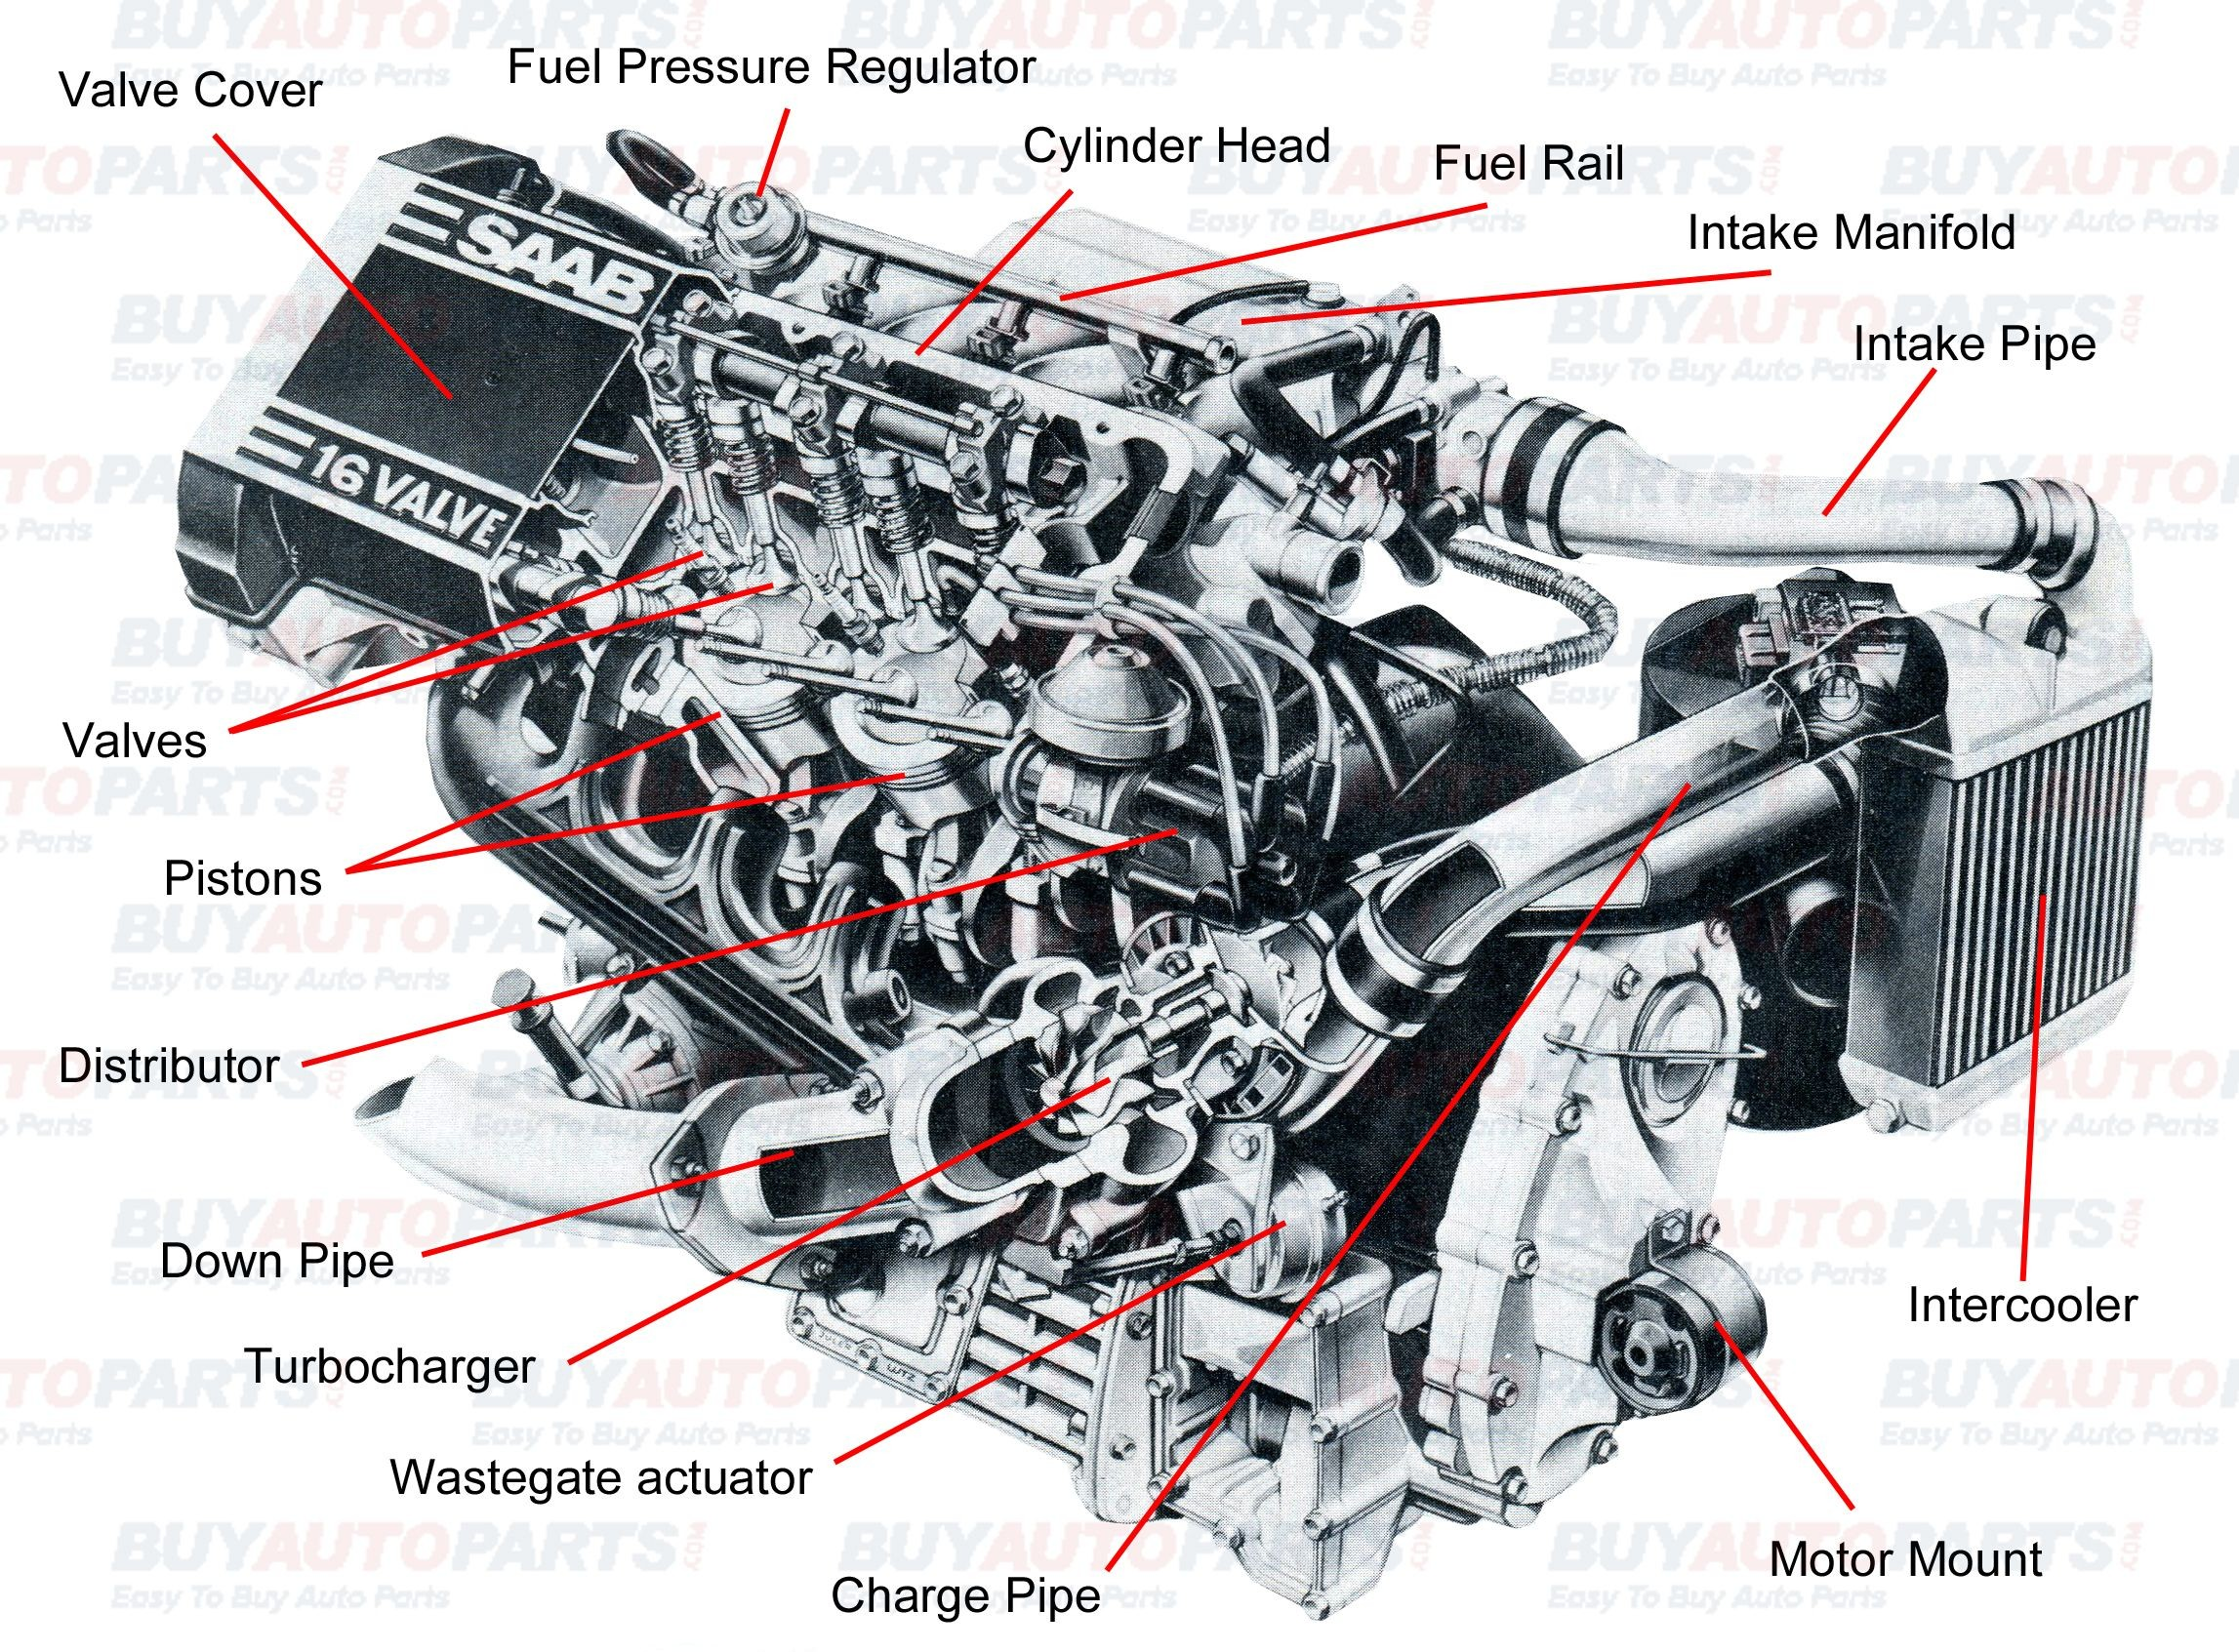 Under Car Hood Diagram | My Wiring DIagram